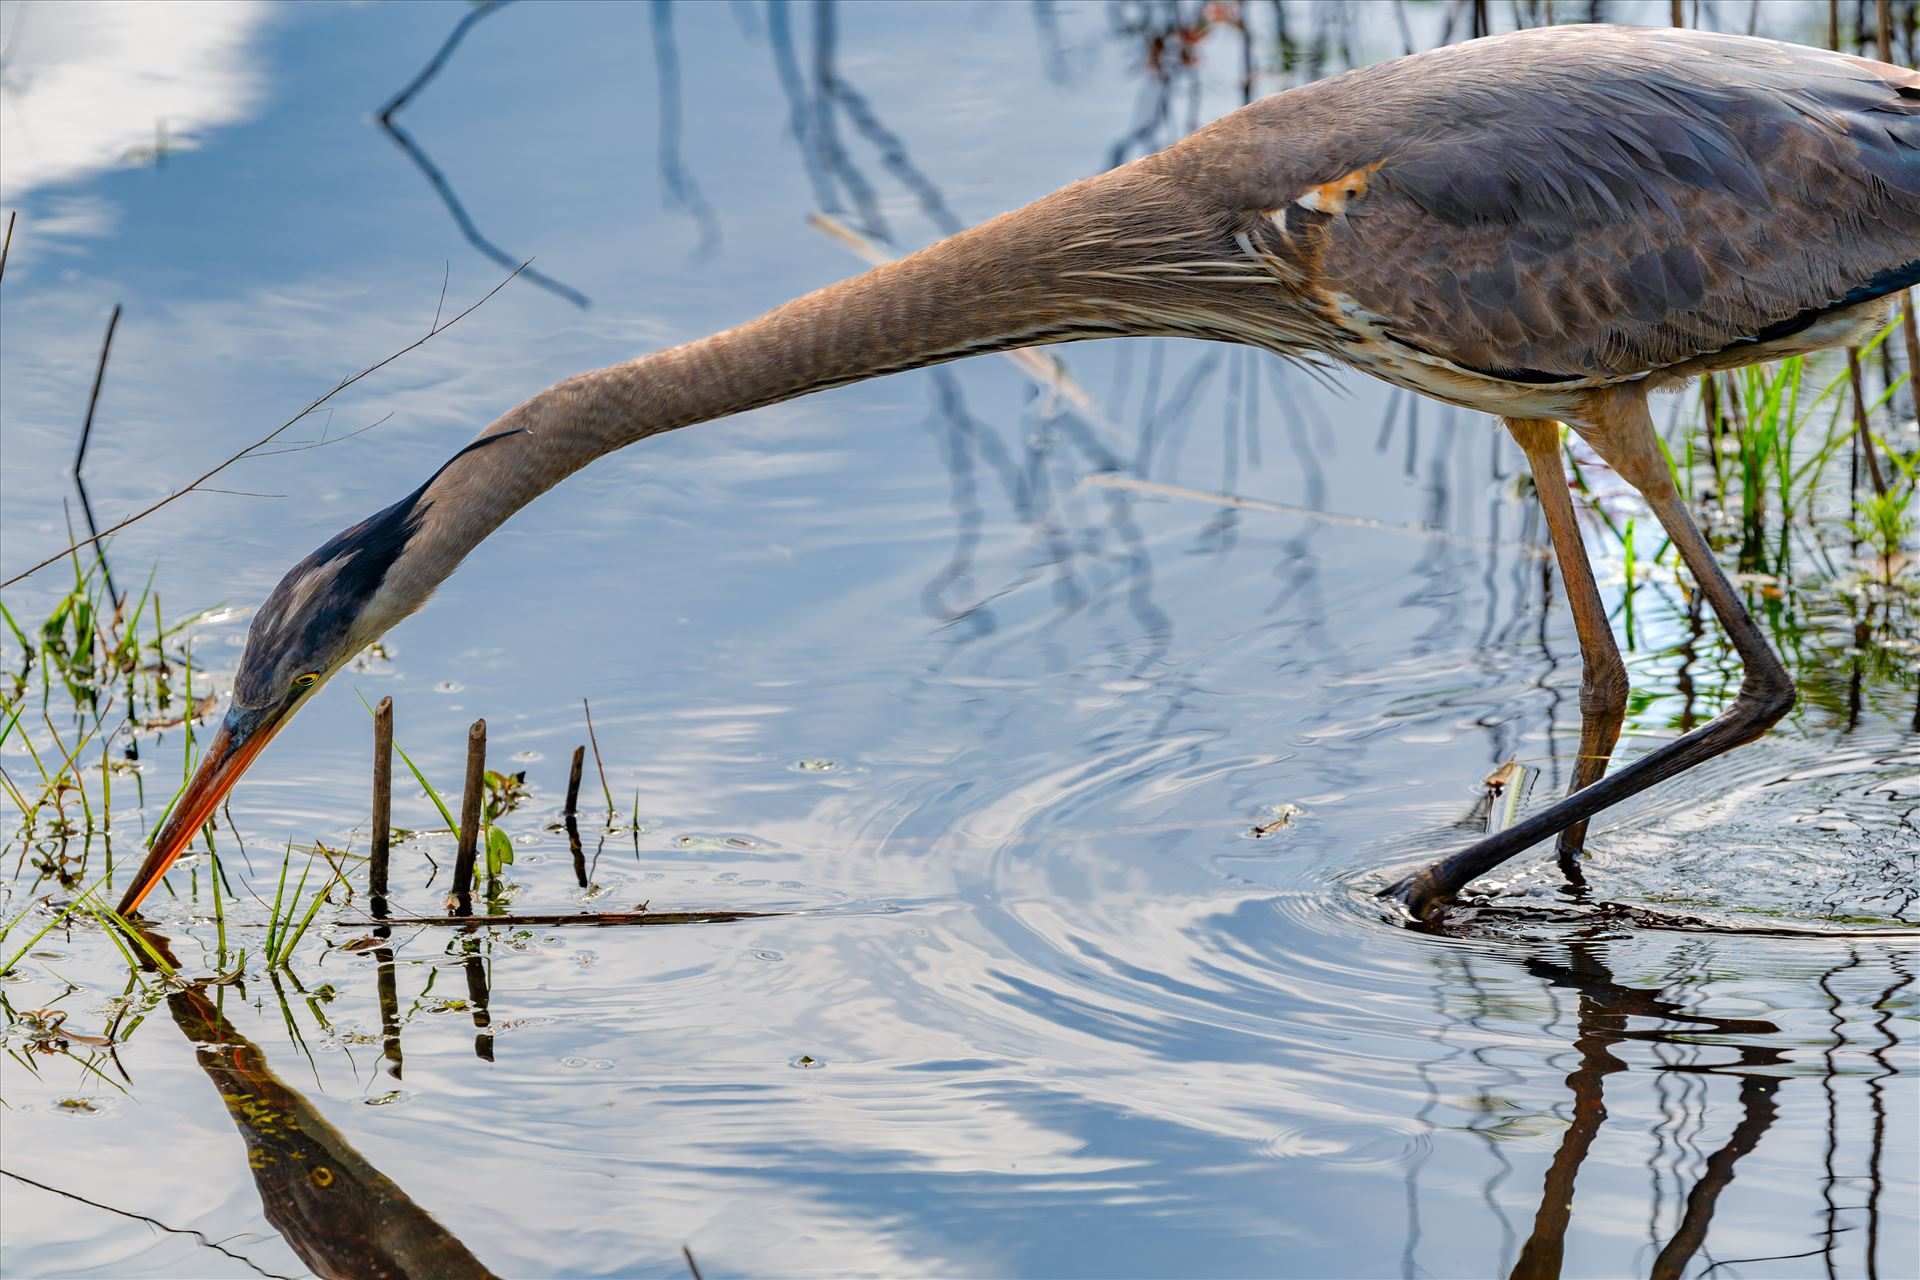 great blue heron - great blue heron fishing in gator lake at St. Andrews State Park, Florida by Terry Kelly Photography